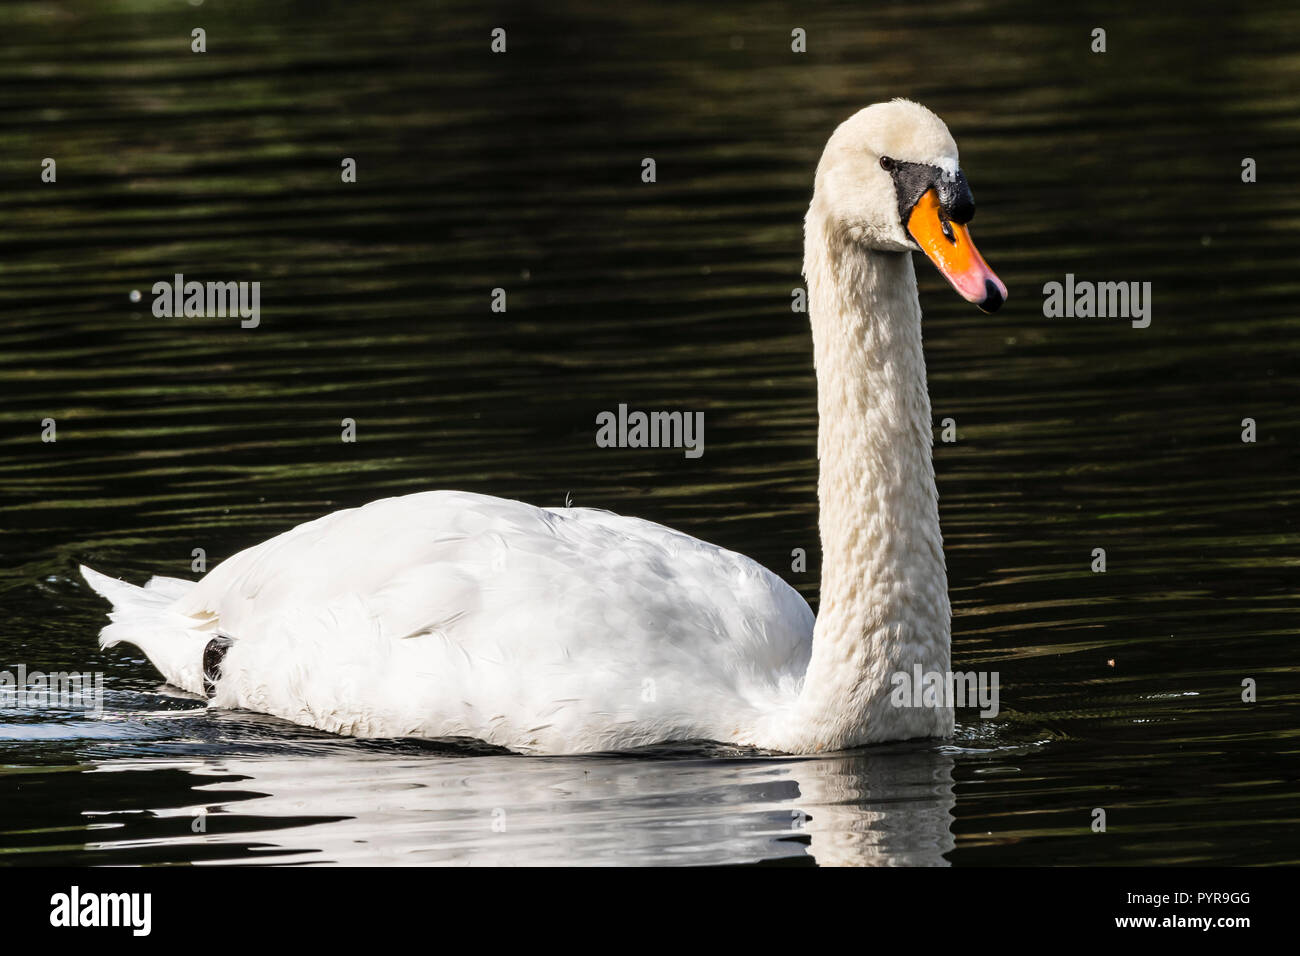 White swan on the lake at The Vyne, Hampshire, UK Stock Photo